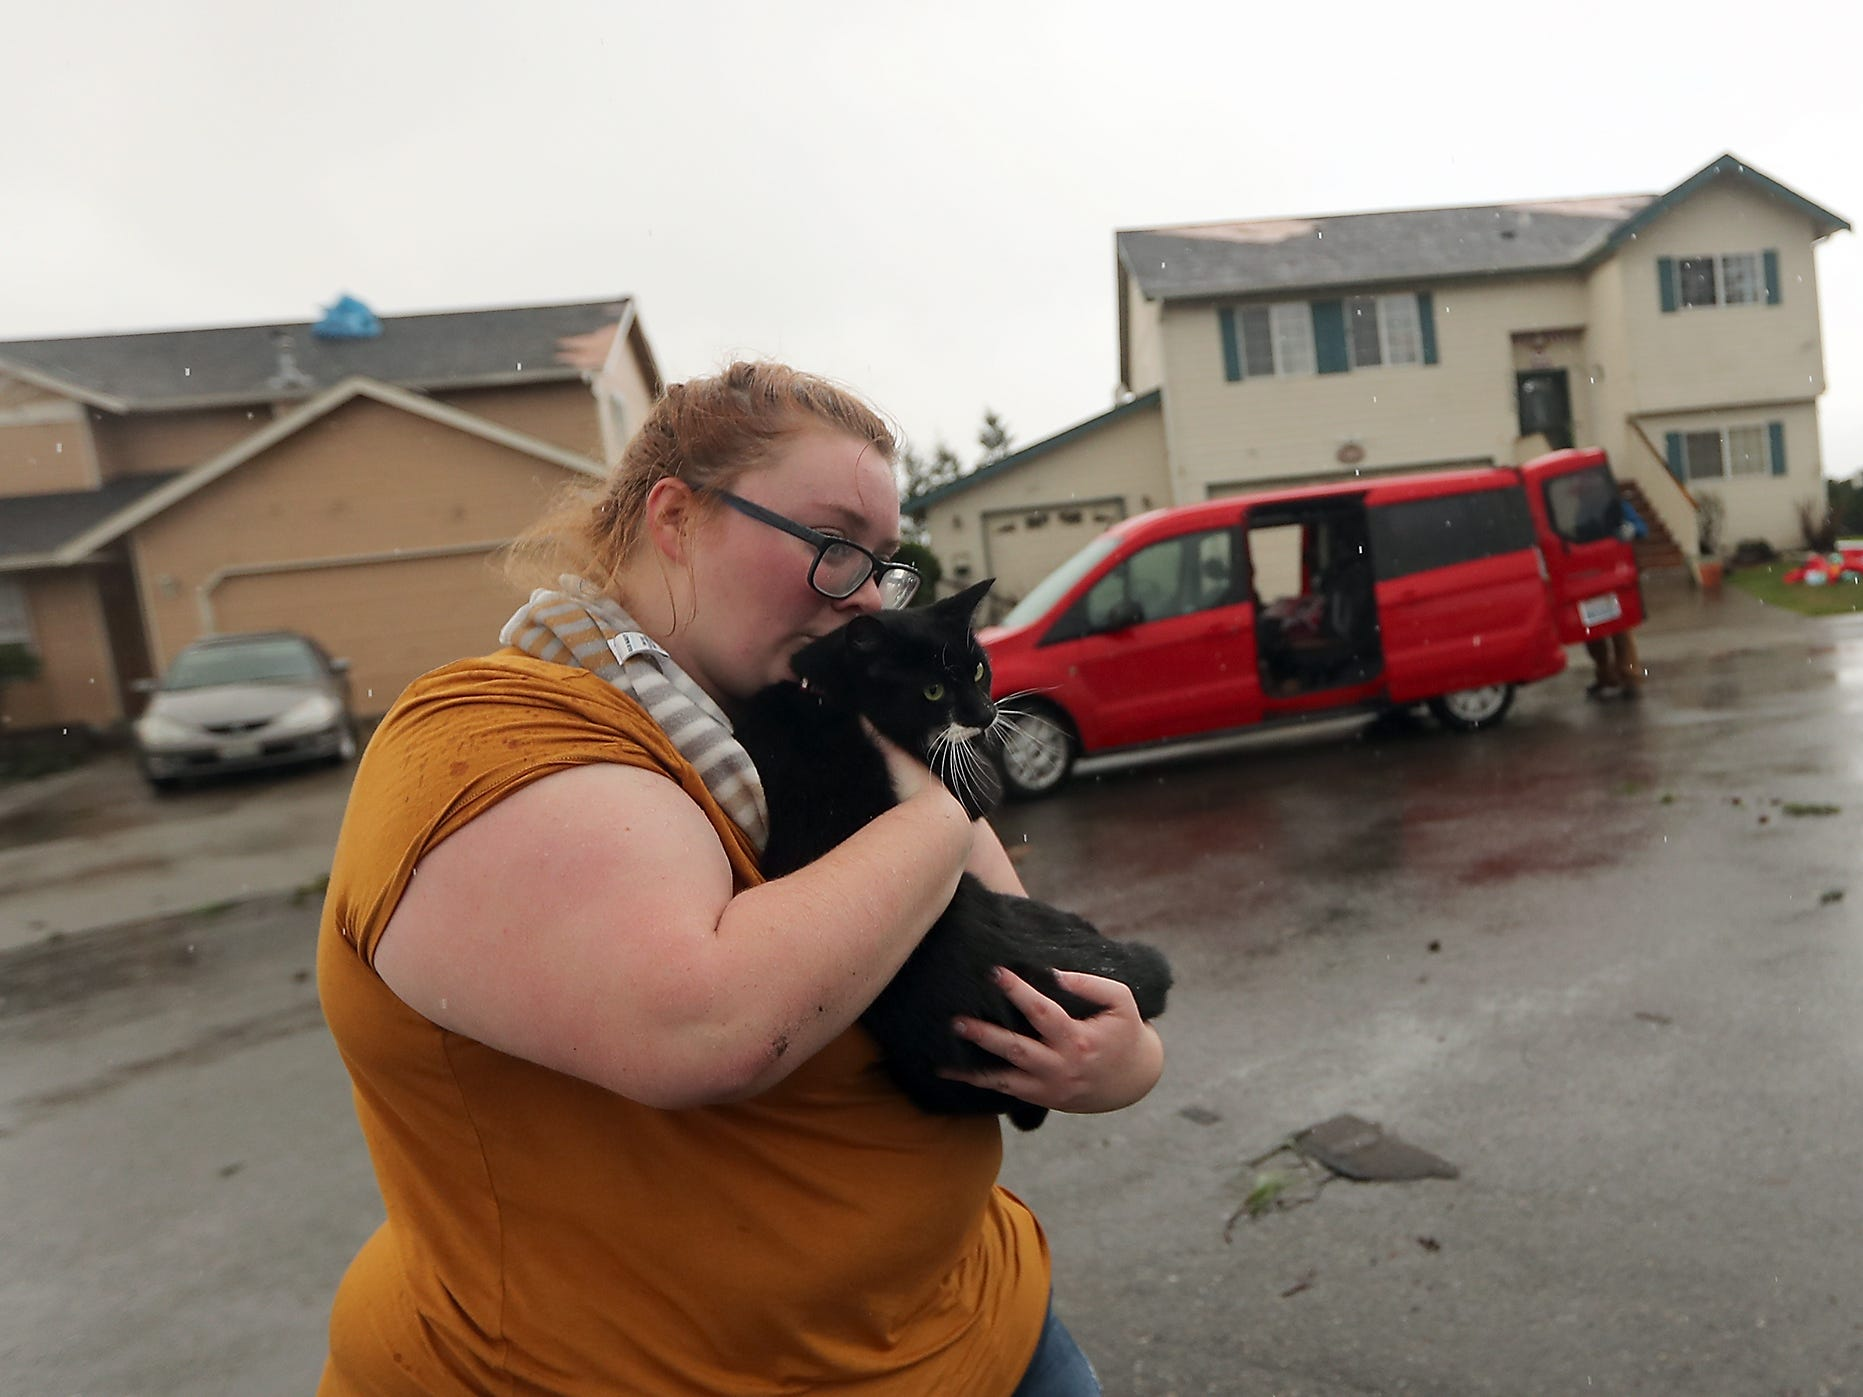 Morgan Crain snuggles her cat Loki as she rushes him from her home after finding him under a bed on Wednesday, December 19, 2018.